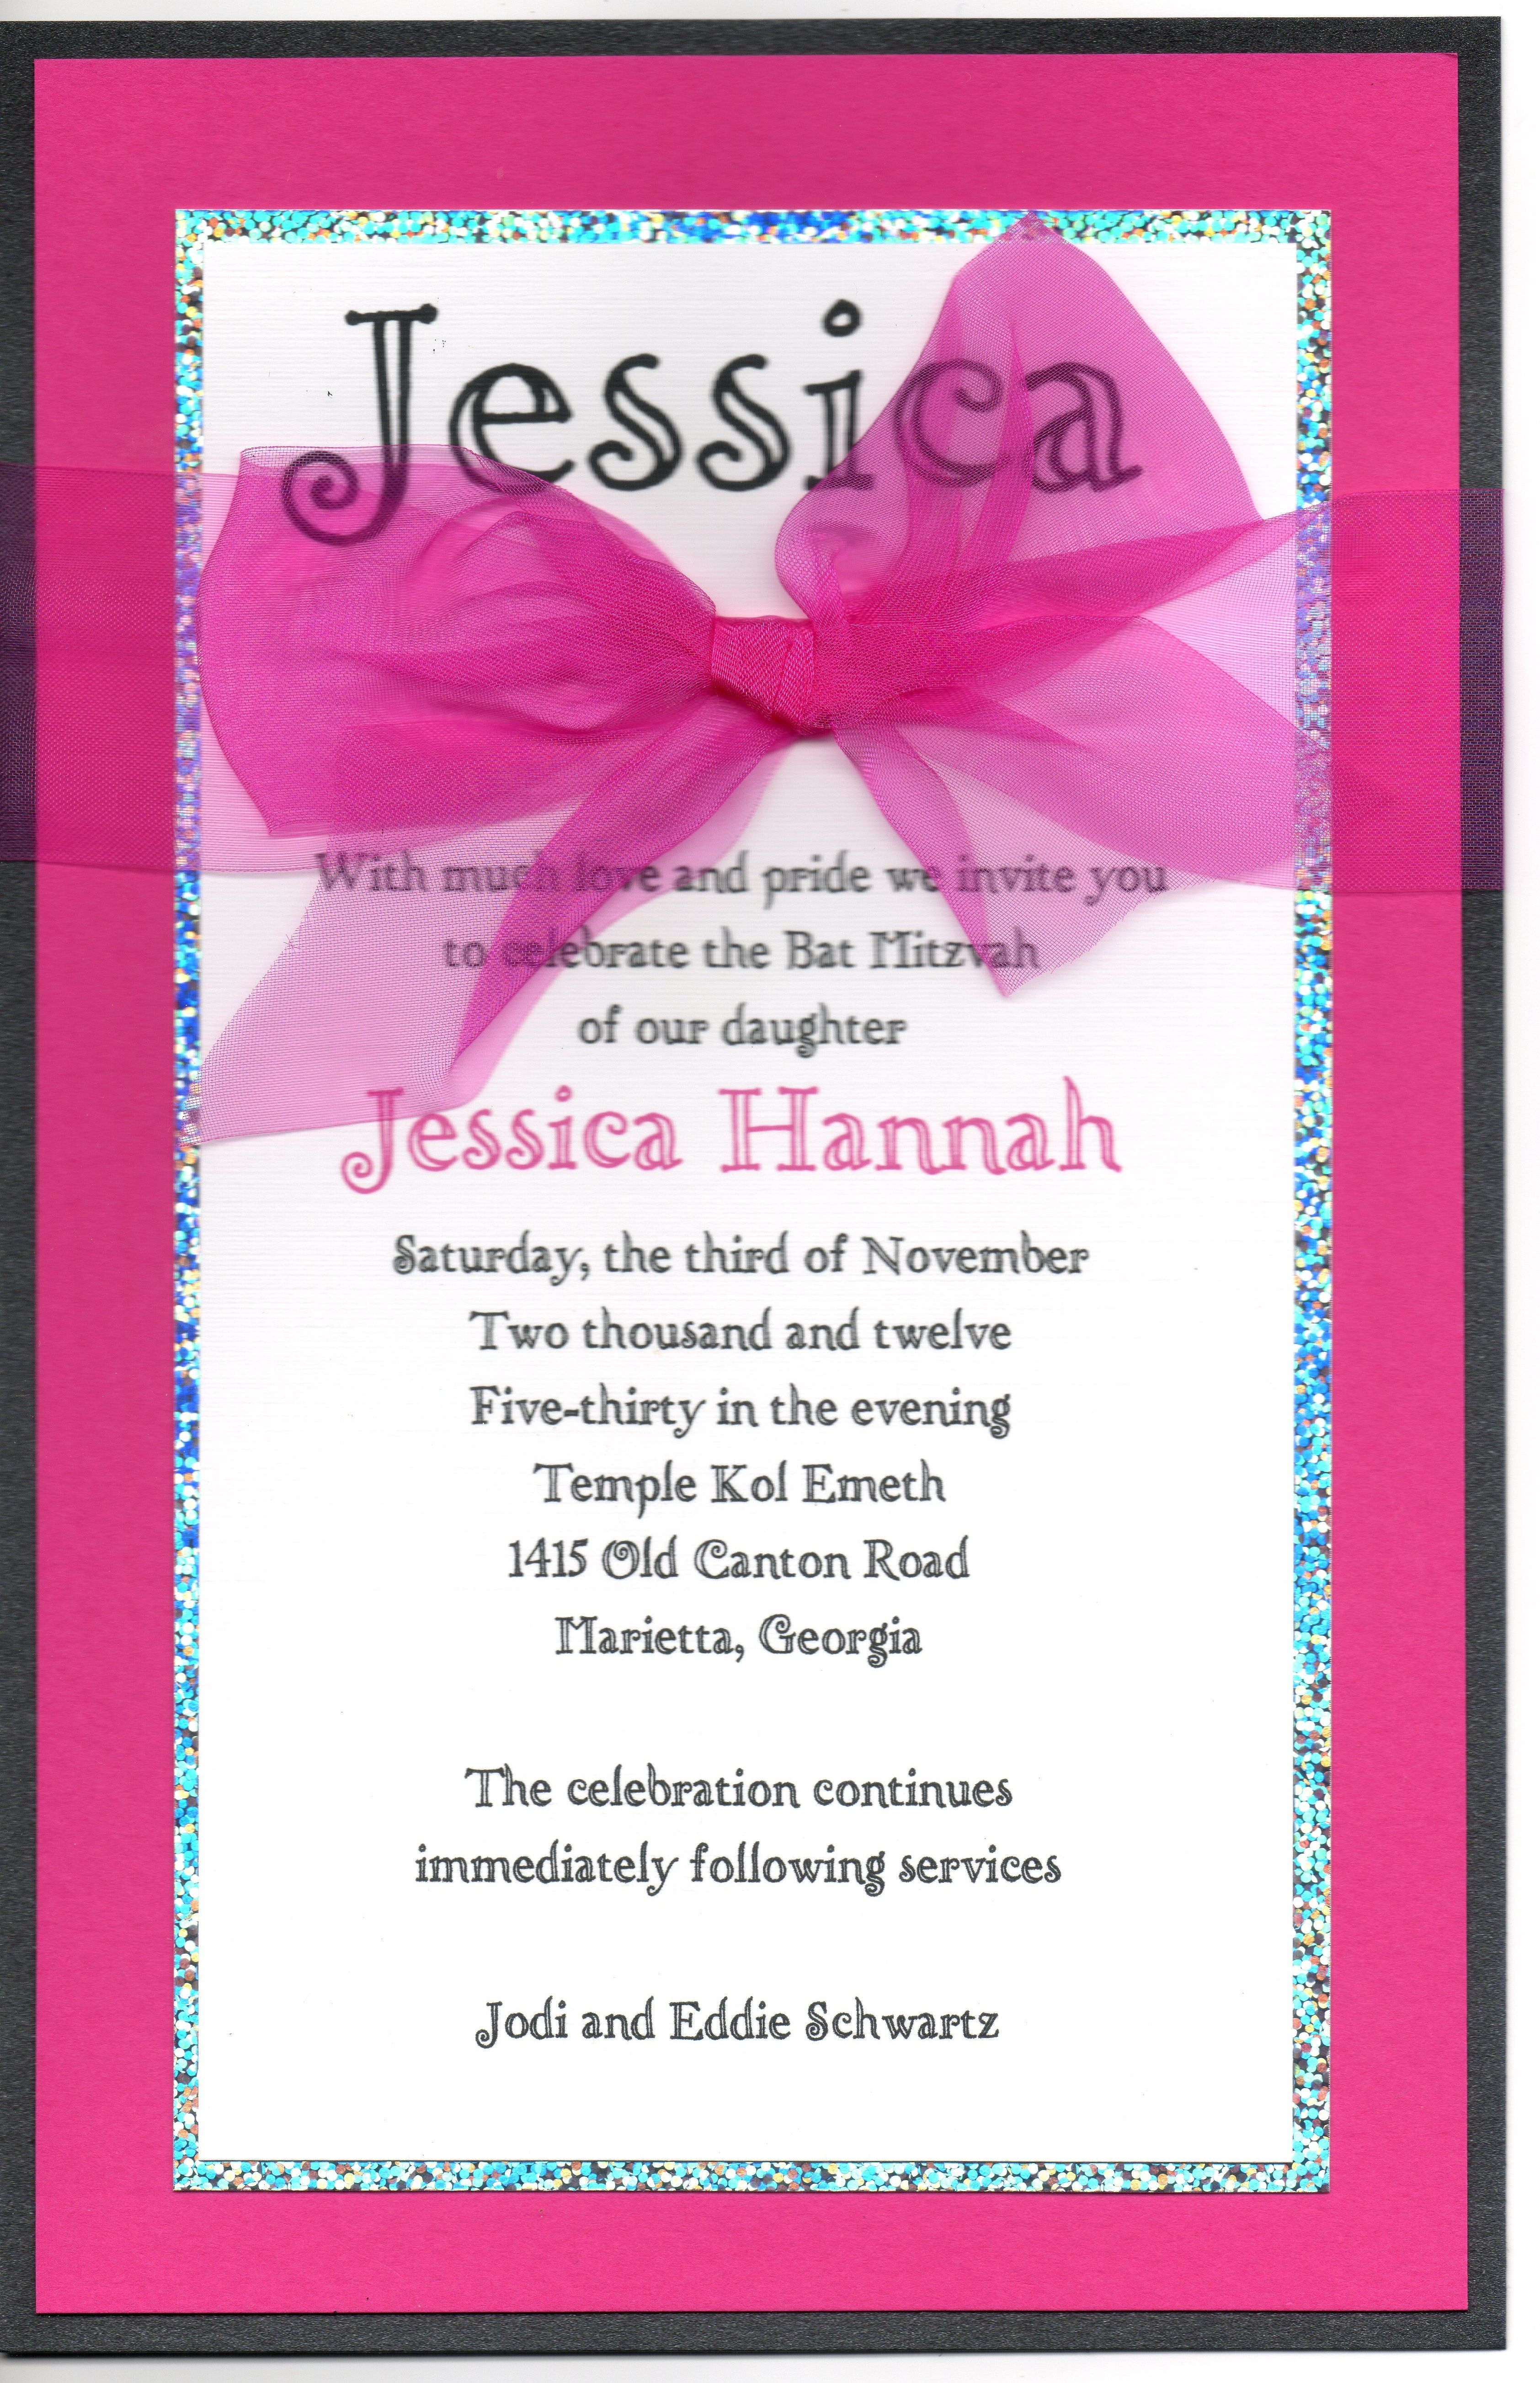 Hot Pink and Silver Bat Mitzvah Invitation | Bar & Bat Mitzvah ...